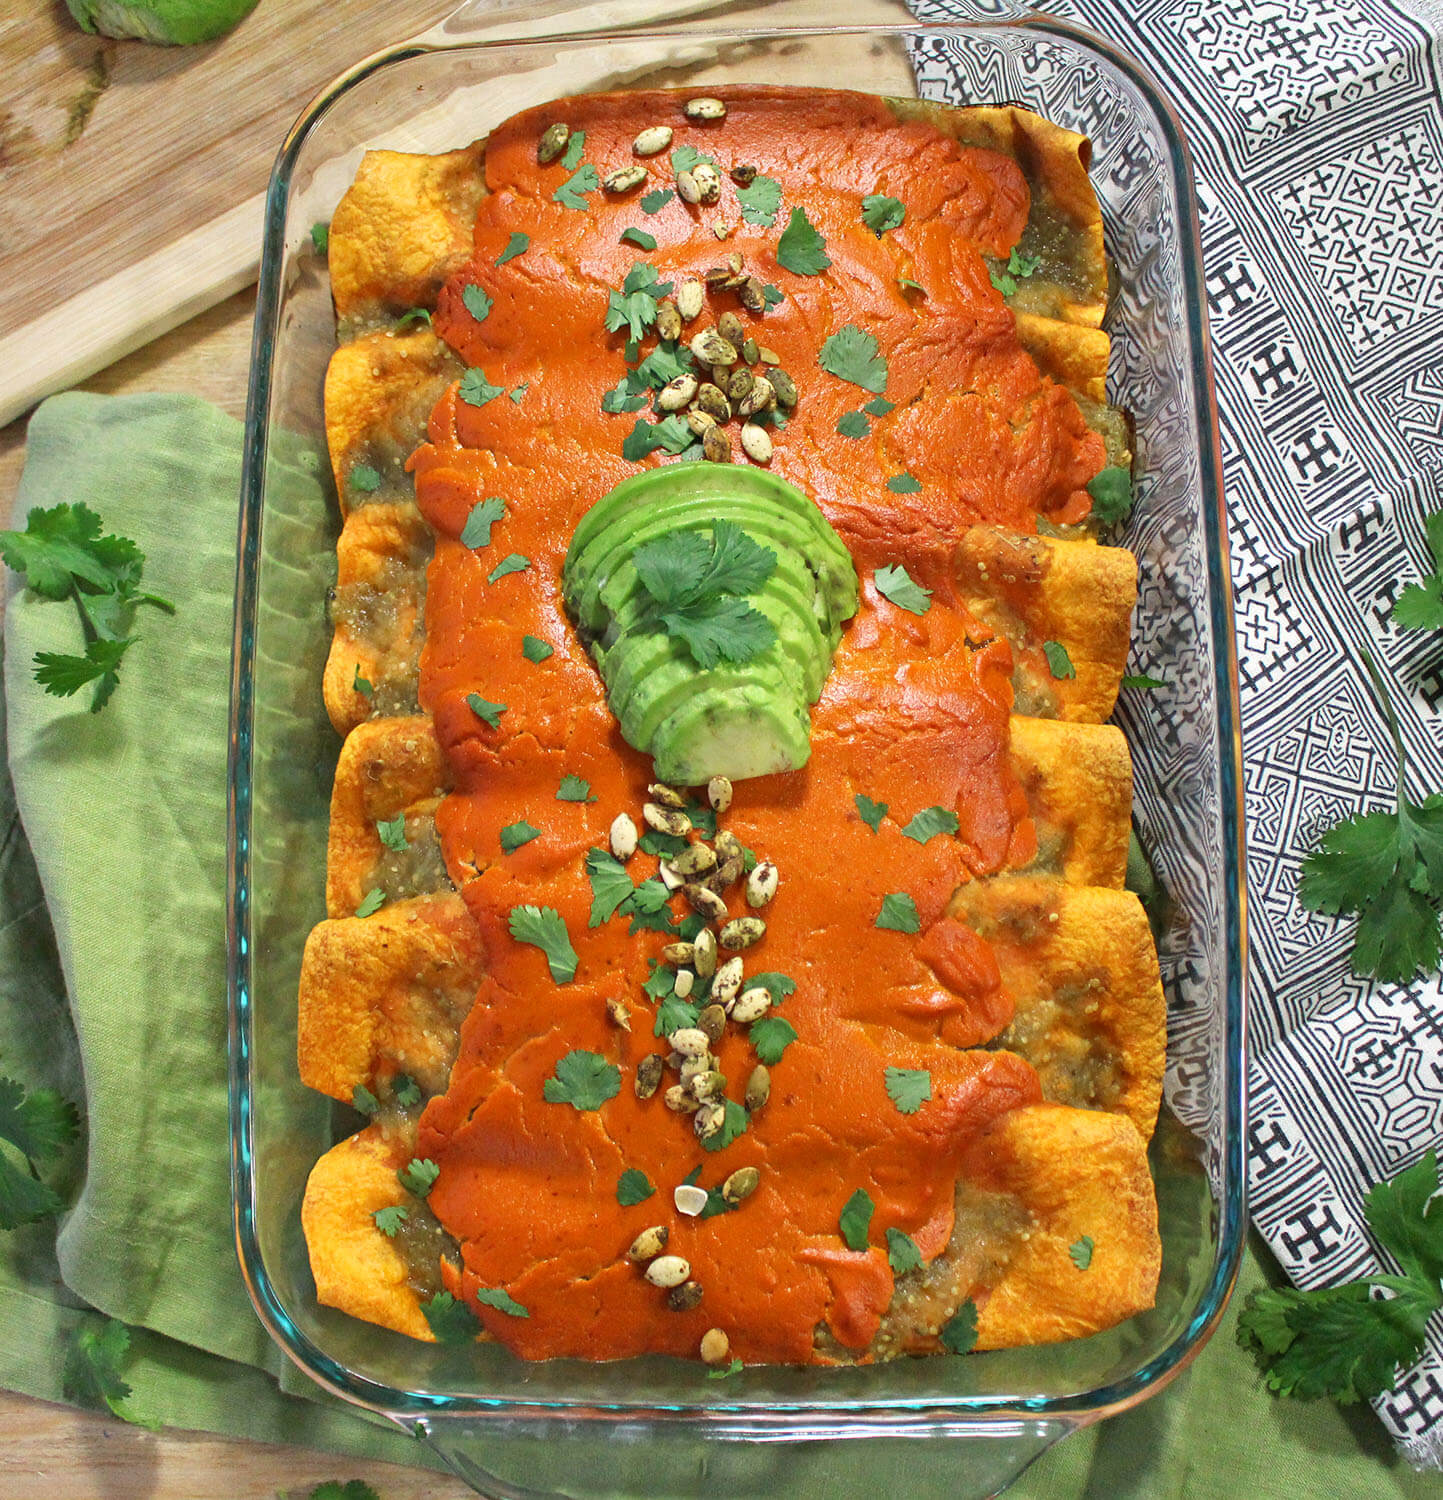 black bean enchiladas vegan sweet potato chipotle cashew cheese vegetarian red pepper burrito zenanzaatar zena 'n zaatar enchilada mexican food blog easy recipe